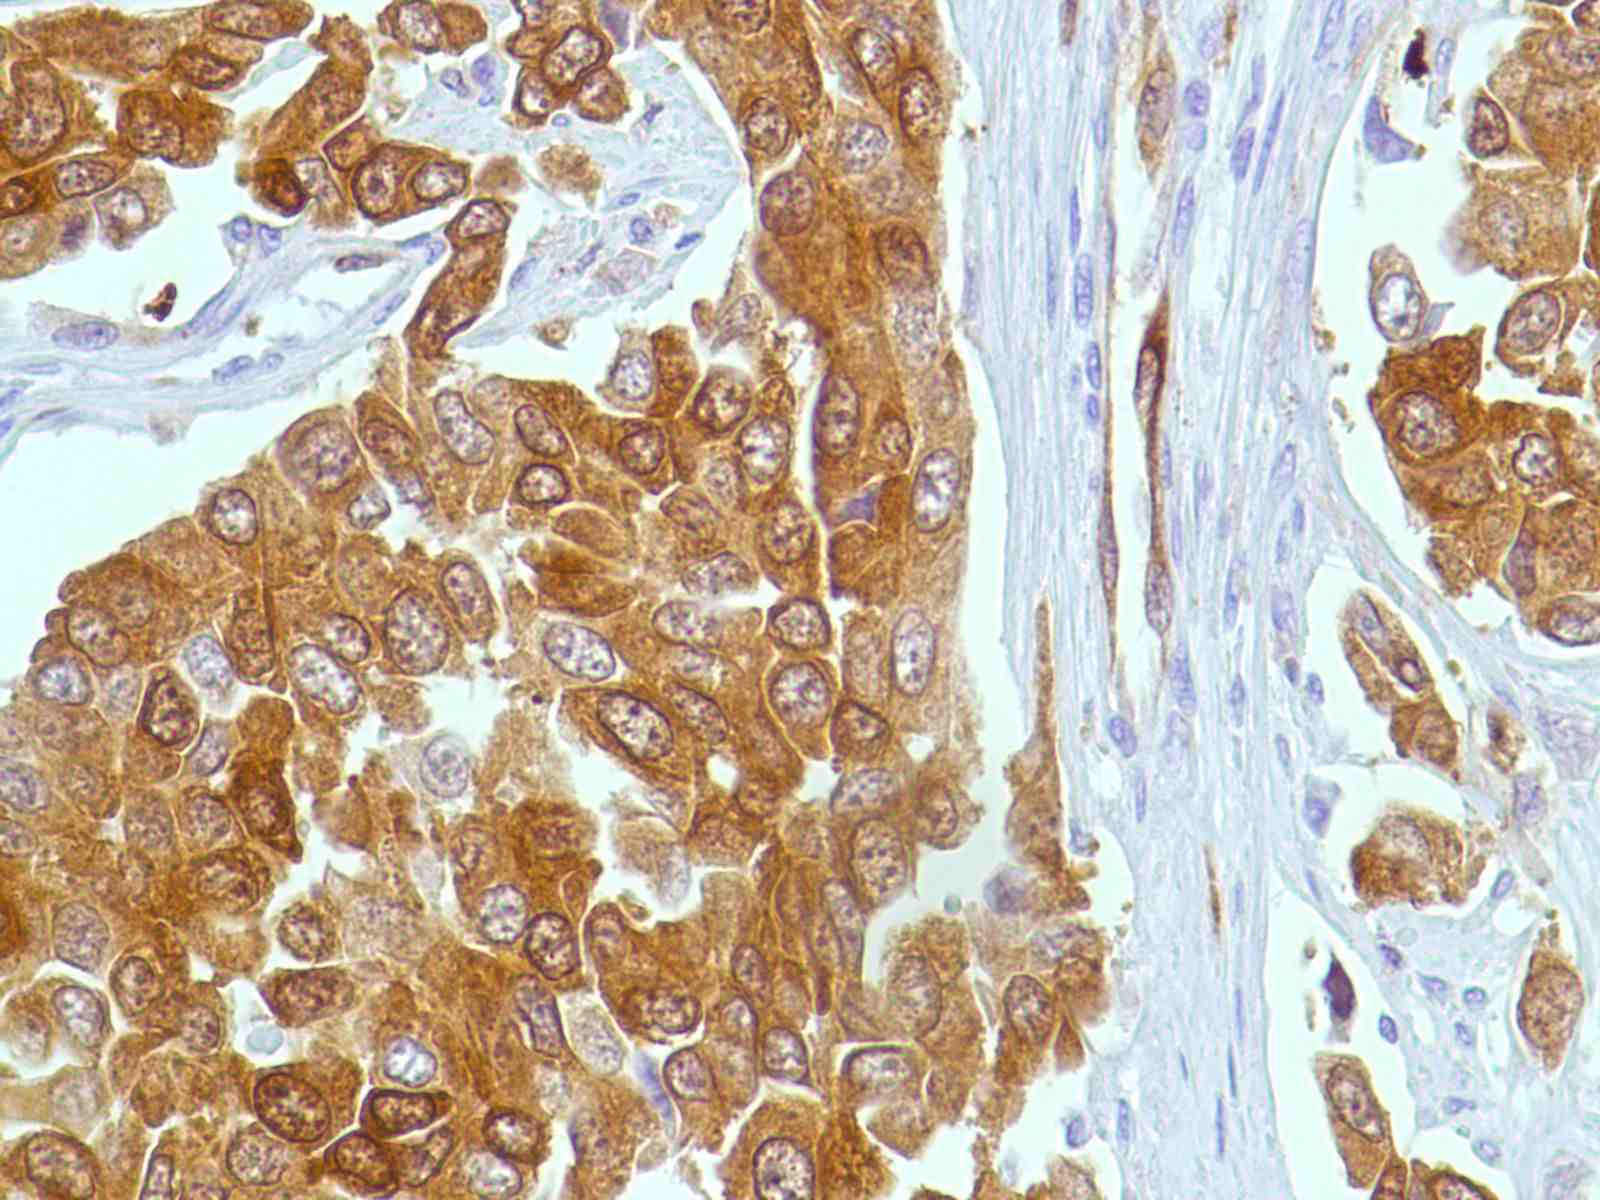 Human Breast Ductal Cell Carcinoma stained with anti-Stathmin antibody